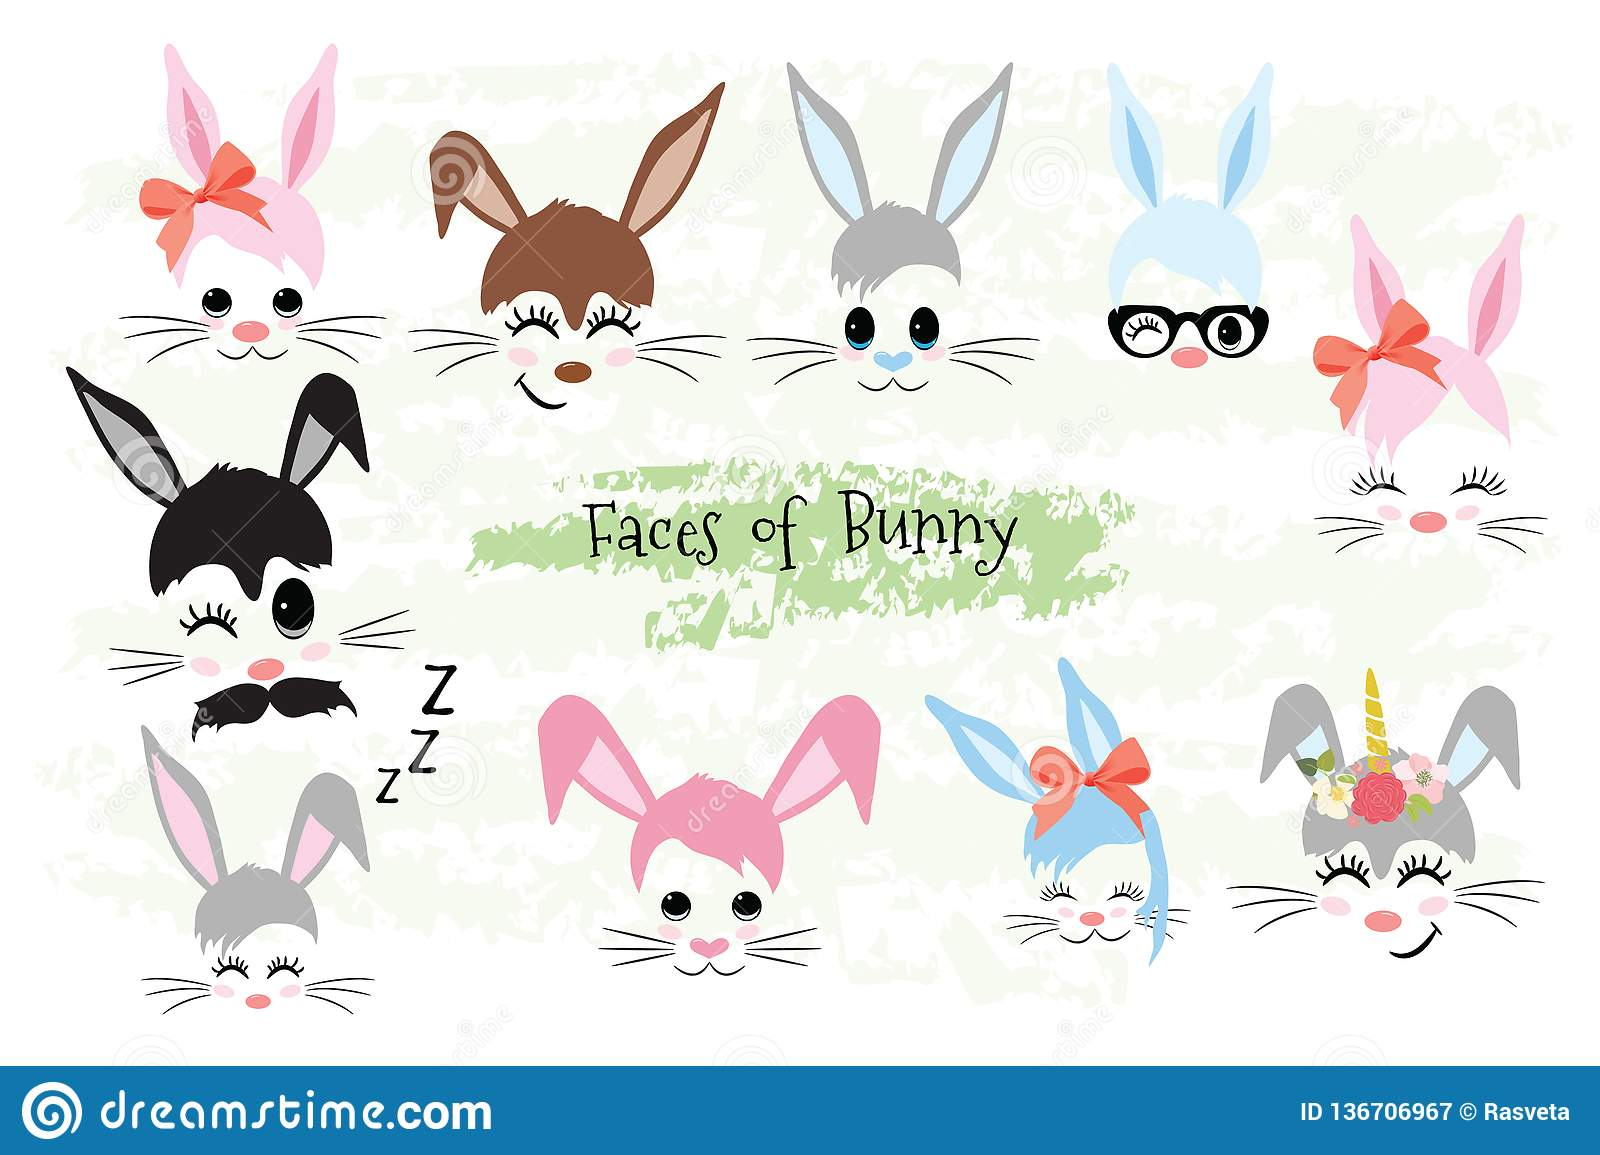 hight resolution of happy easter bunny face clipart brown gray blue pink purple violet bunny animal hipster unicorn little mister miss easter gift